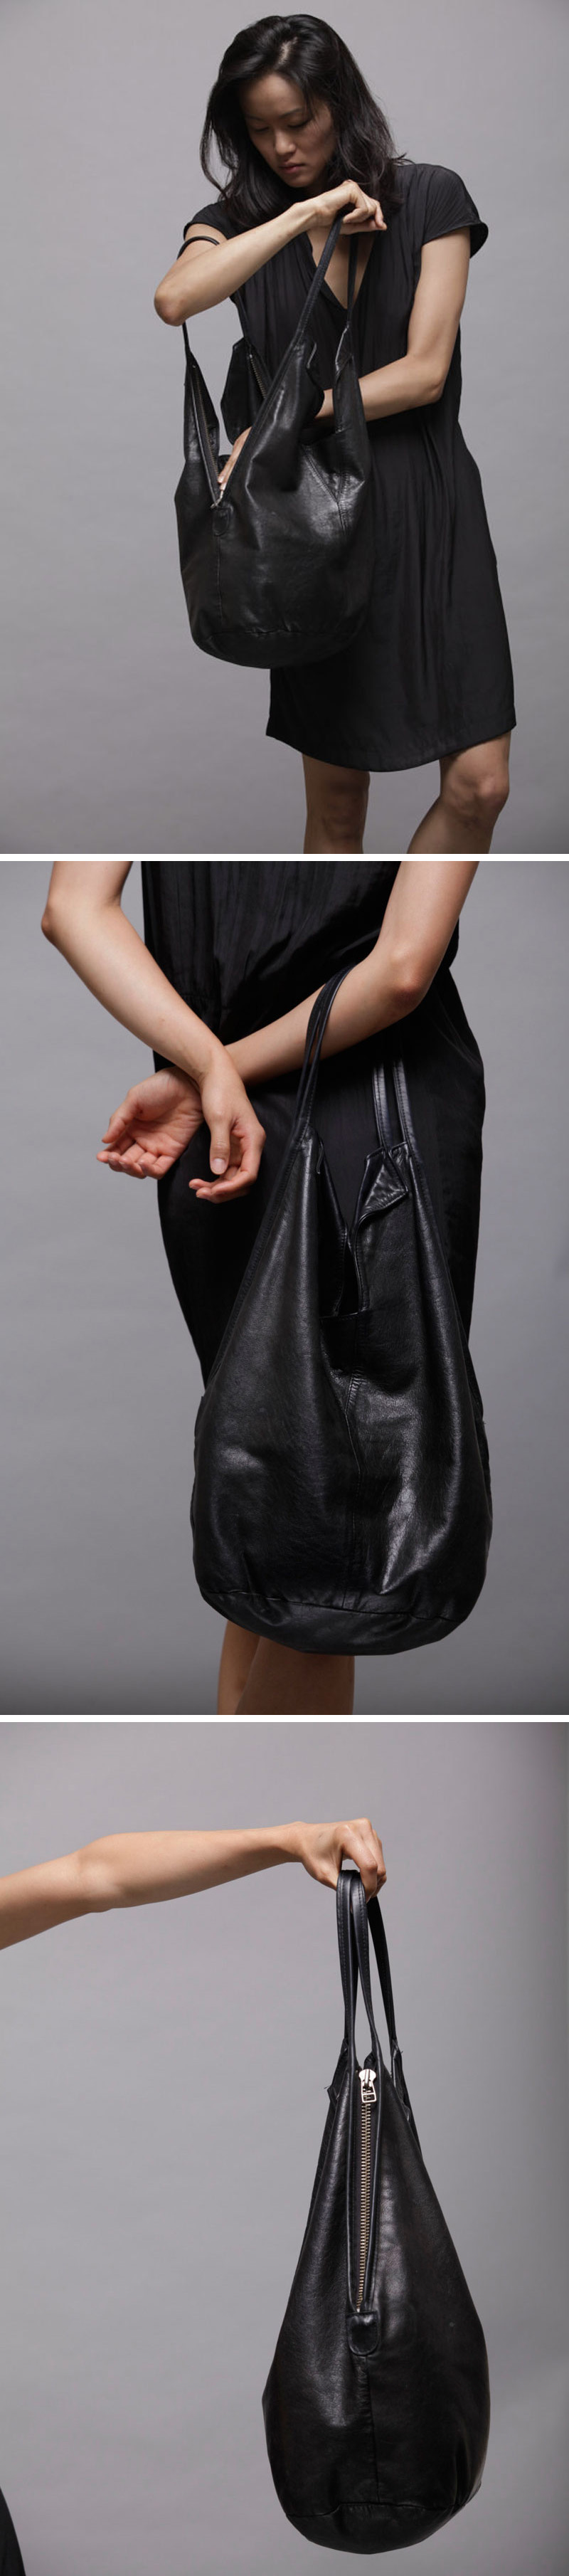 6053ca5e40e3 Change things up with this modern black leather tote that has zippers on  either side to